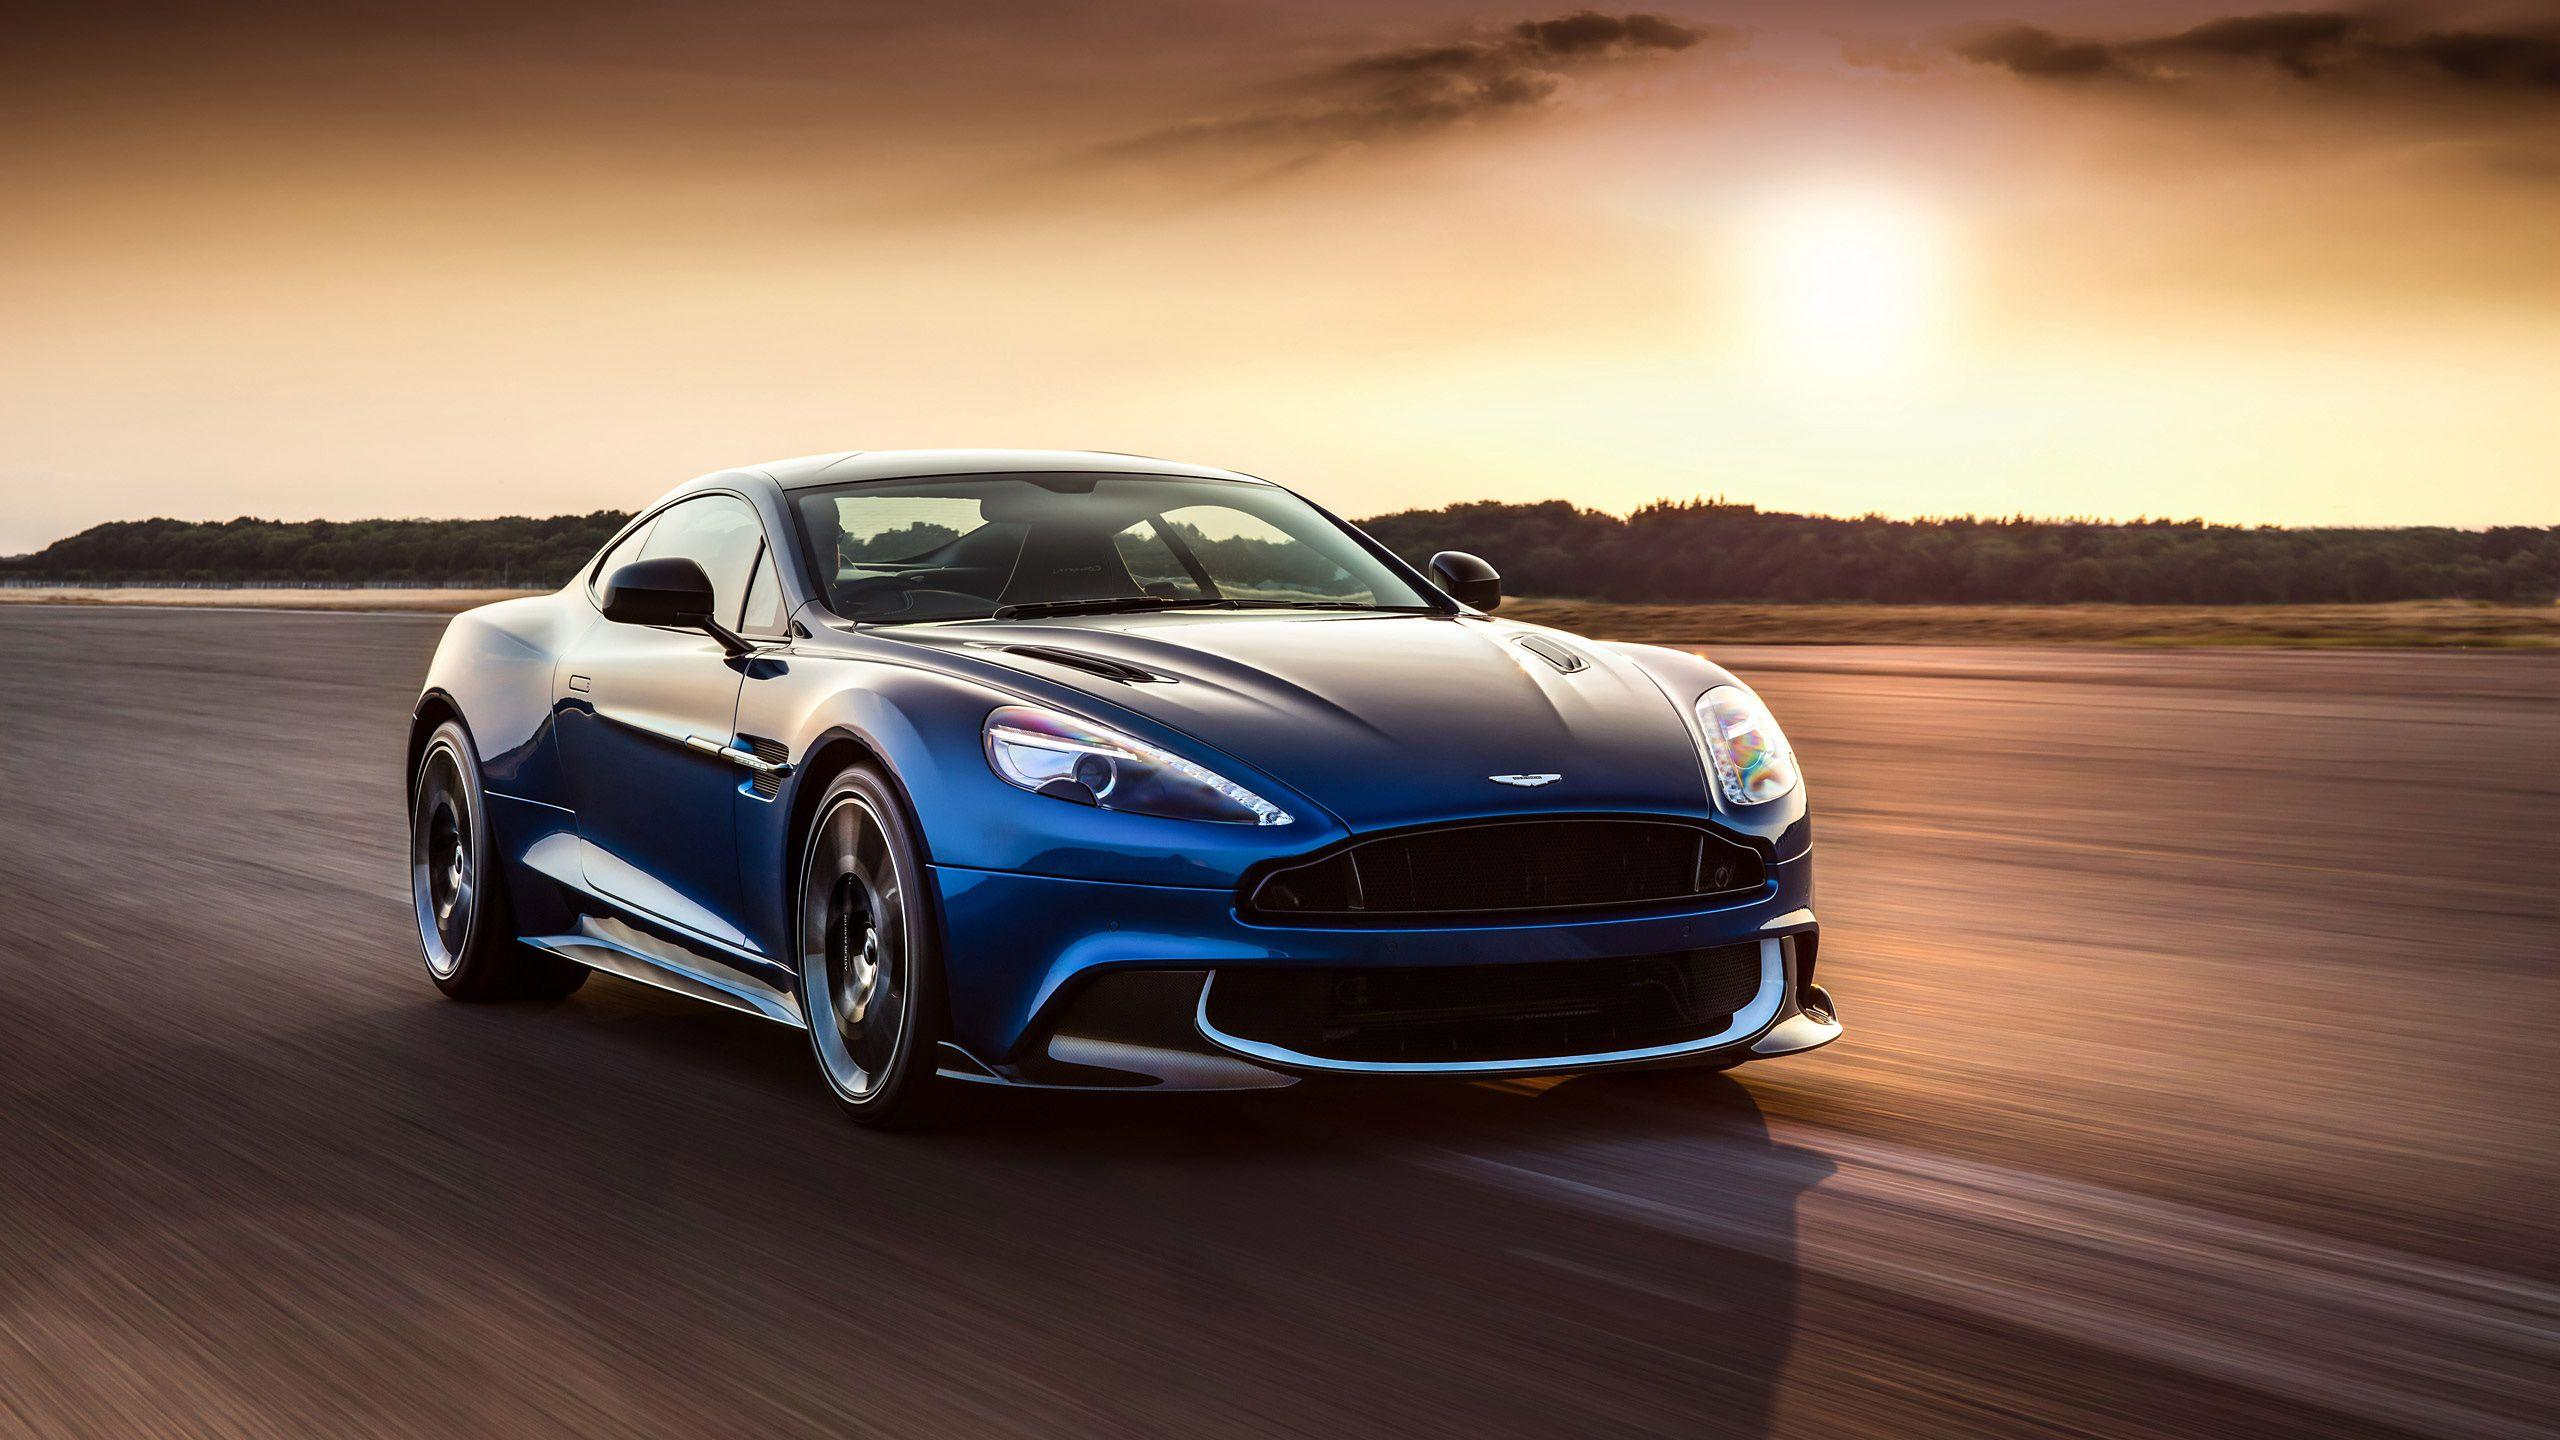 2017 Aston Martin Vanquish S Wallpapers